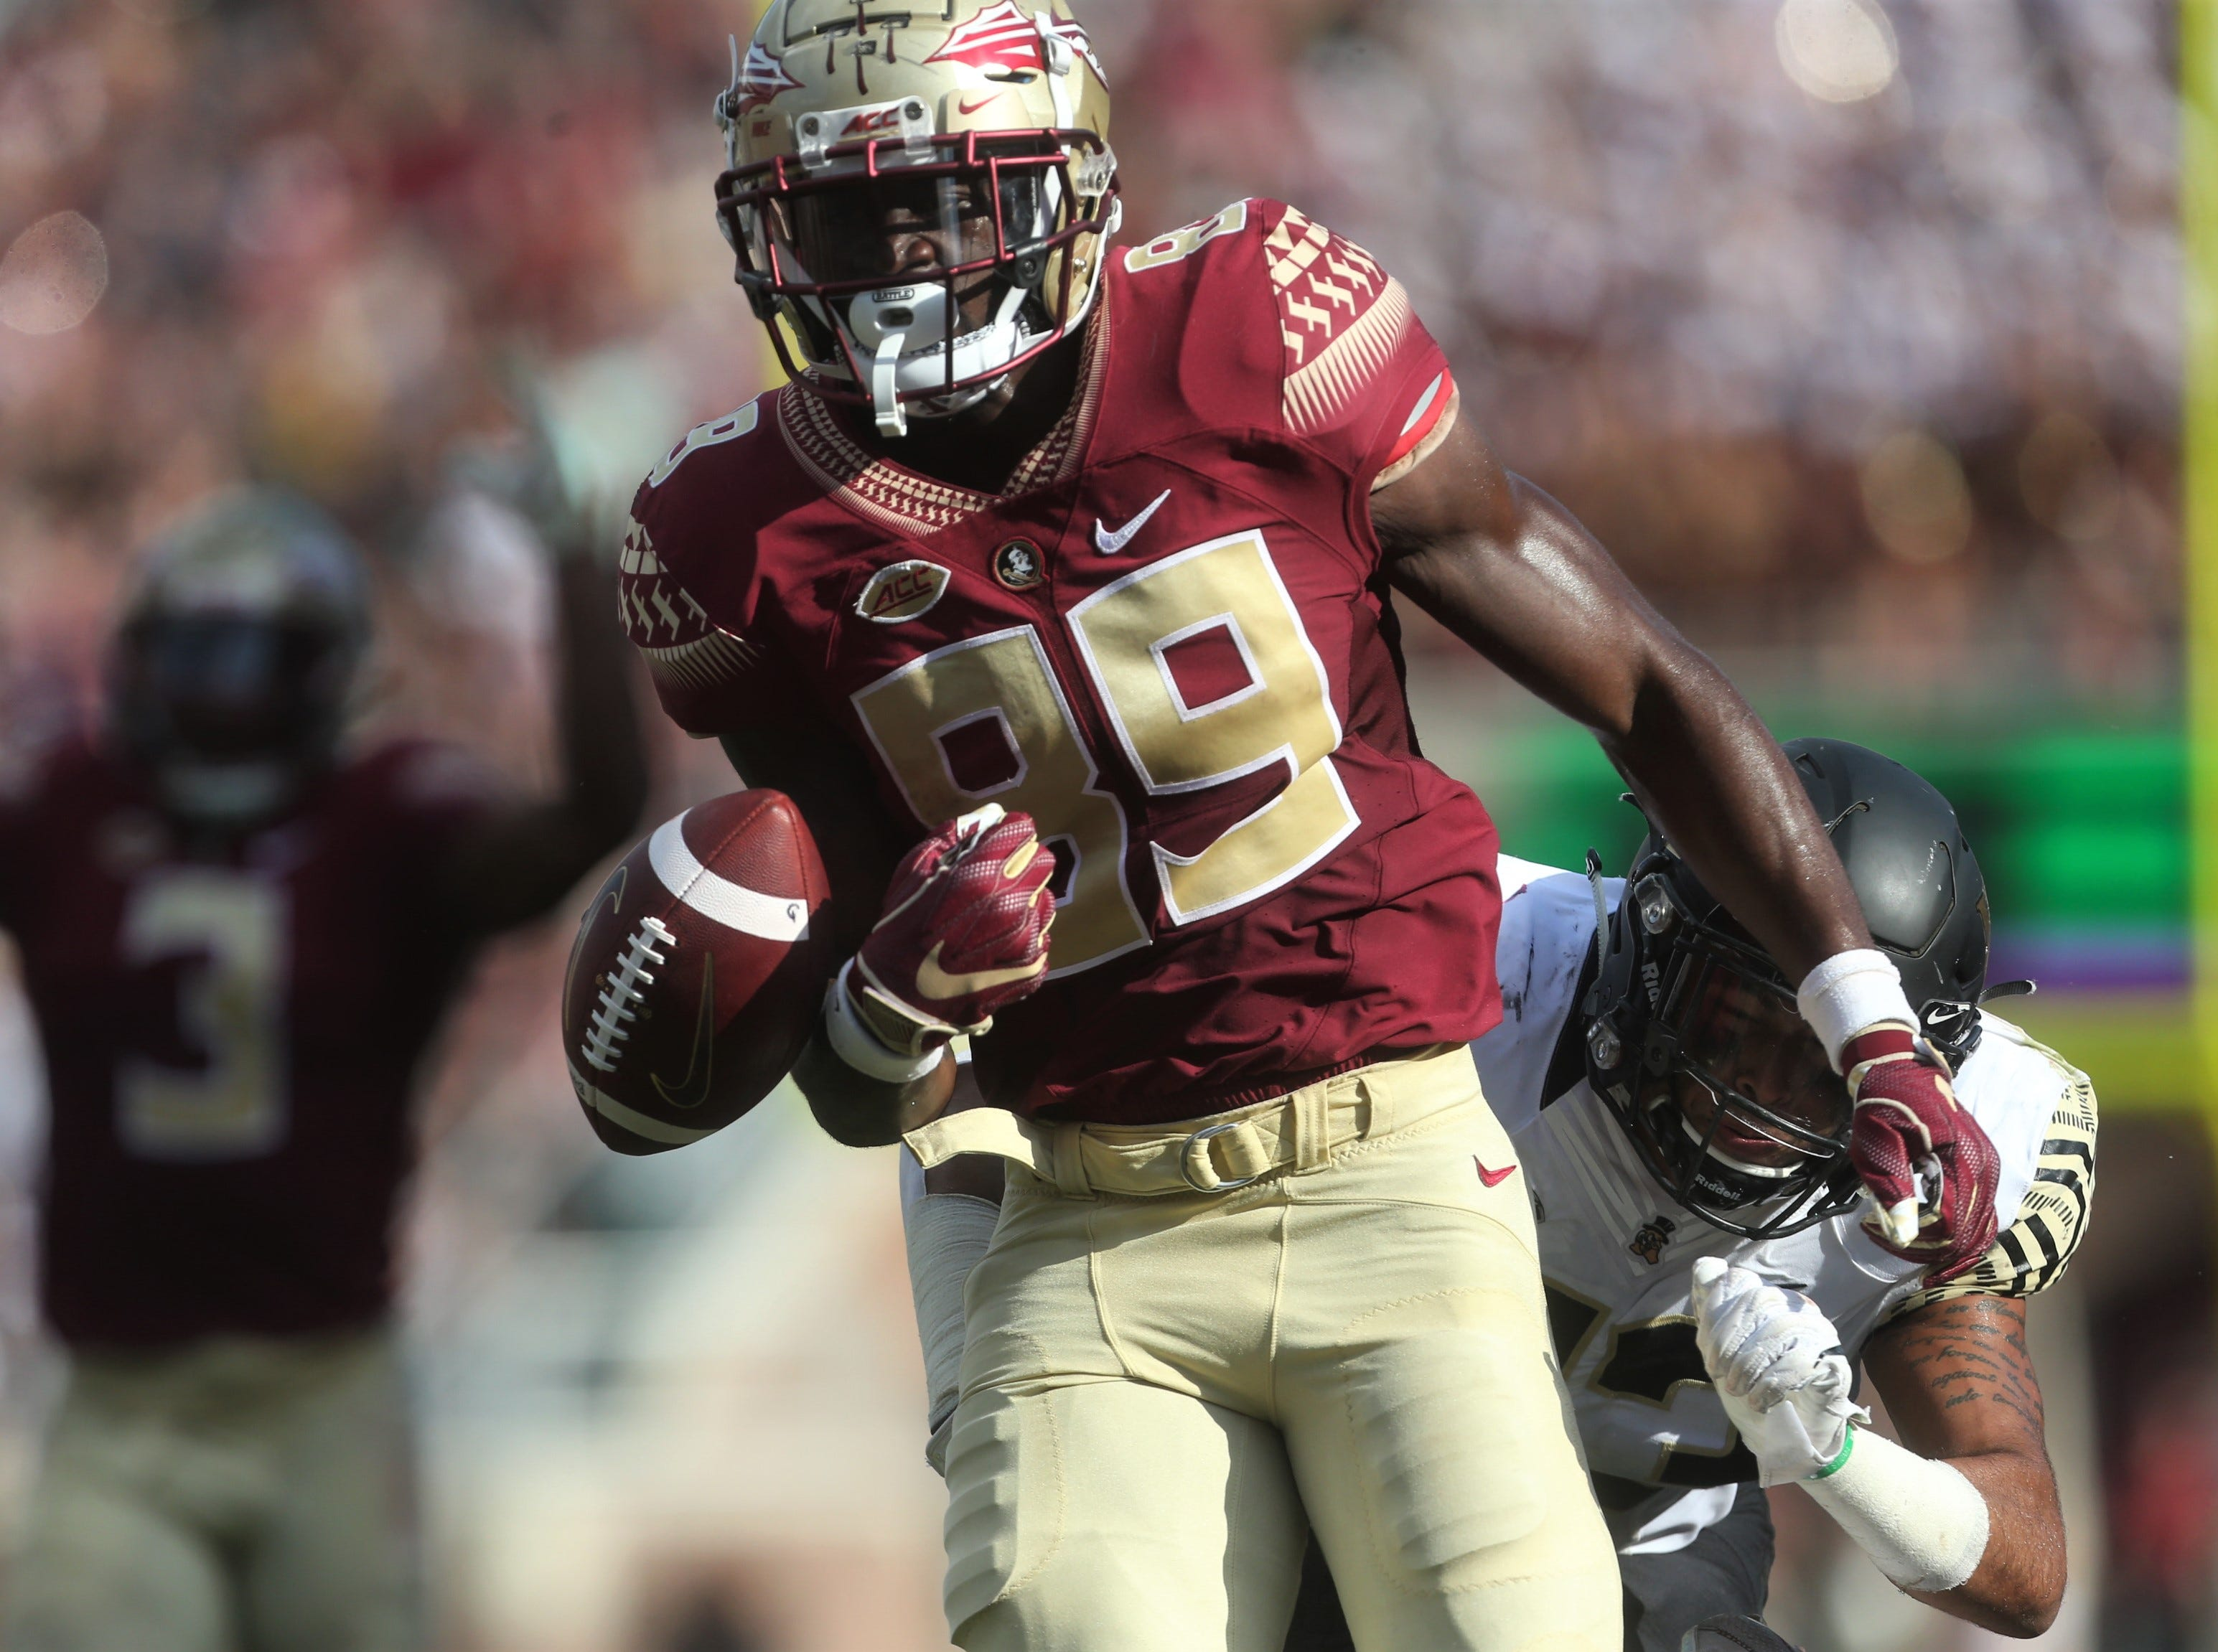 Florida State receiver Keith Gavin busts a long catch-and-run, but a Wake Forest defender comes from behind and creates a fumble just short of being a touchdown during a game at Doak Campbell Stadium on Oct. 10, 2018.